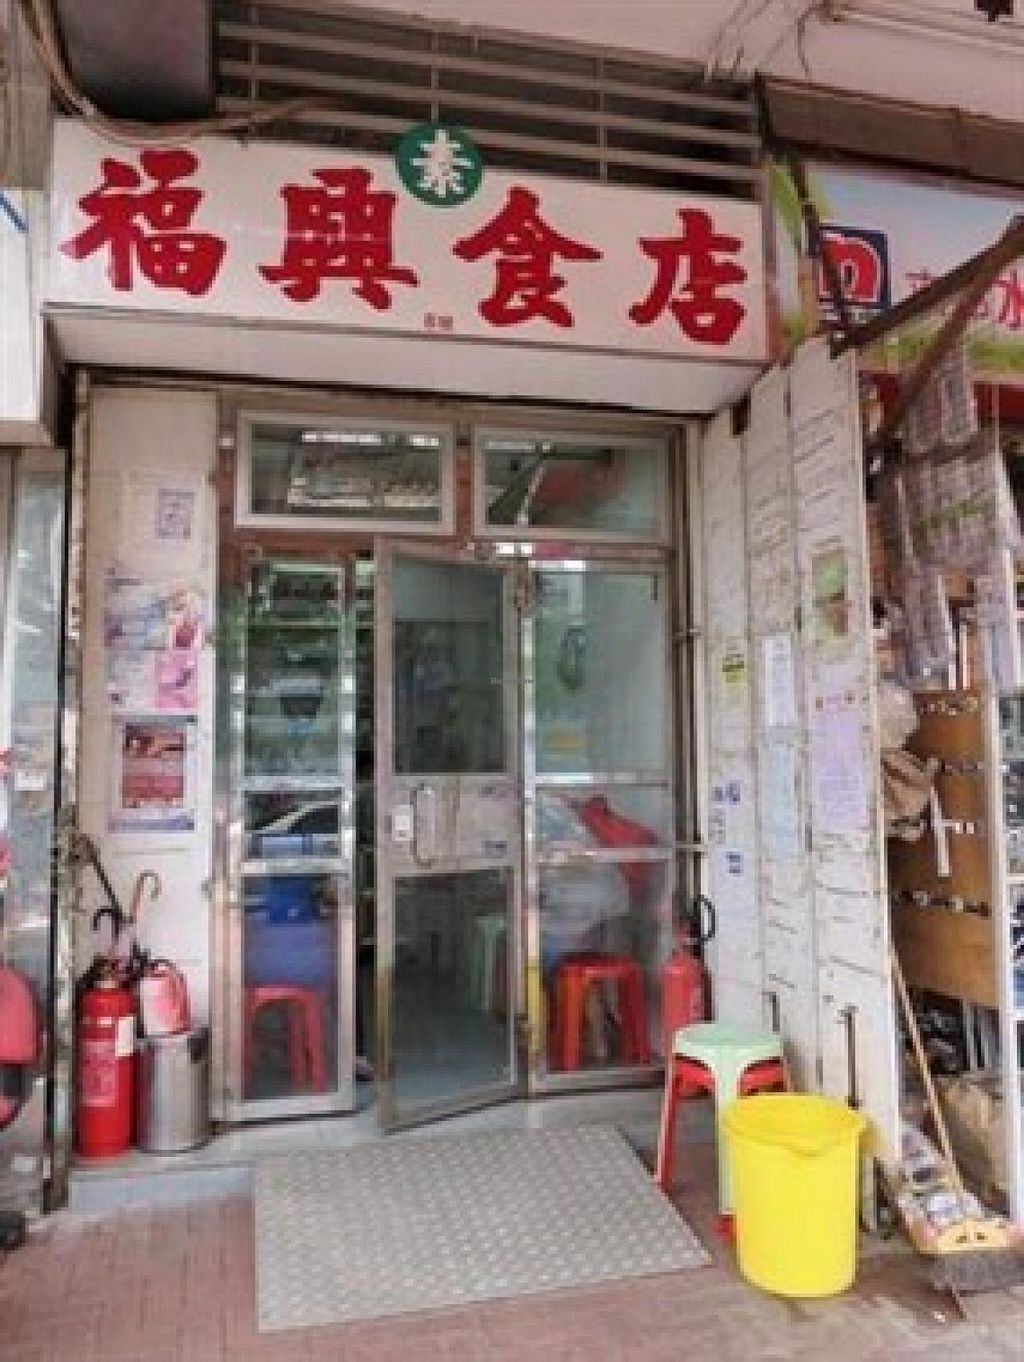 """Photo of Fok Hing Food Shop  by <a href=""""/members/profile/Stevie"""">Stevie</a> <br/>1 <br/> May 28, 2015  - <a href='/contact/abuse/image/52914/103881'>Report</a>"""